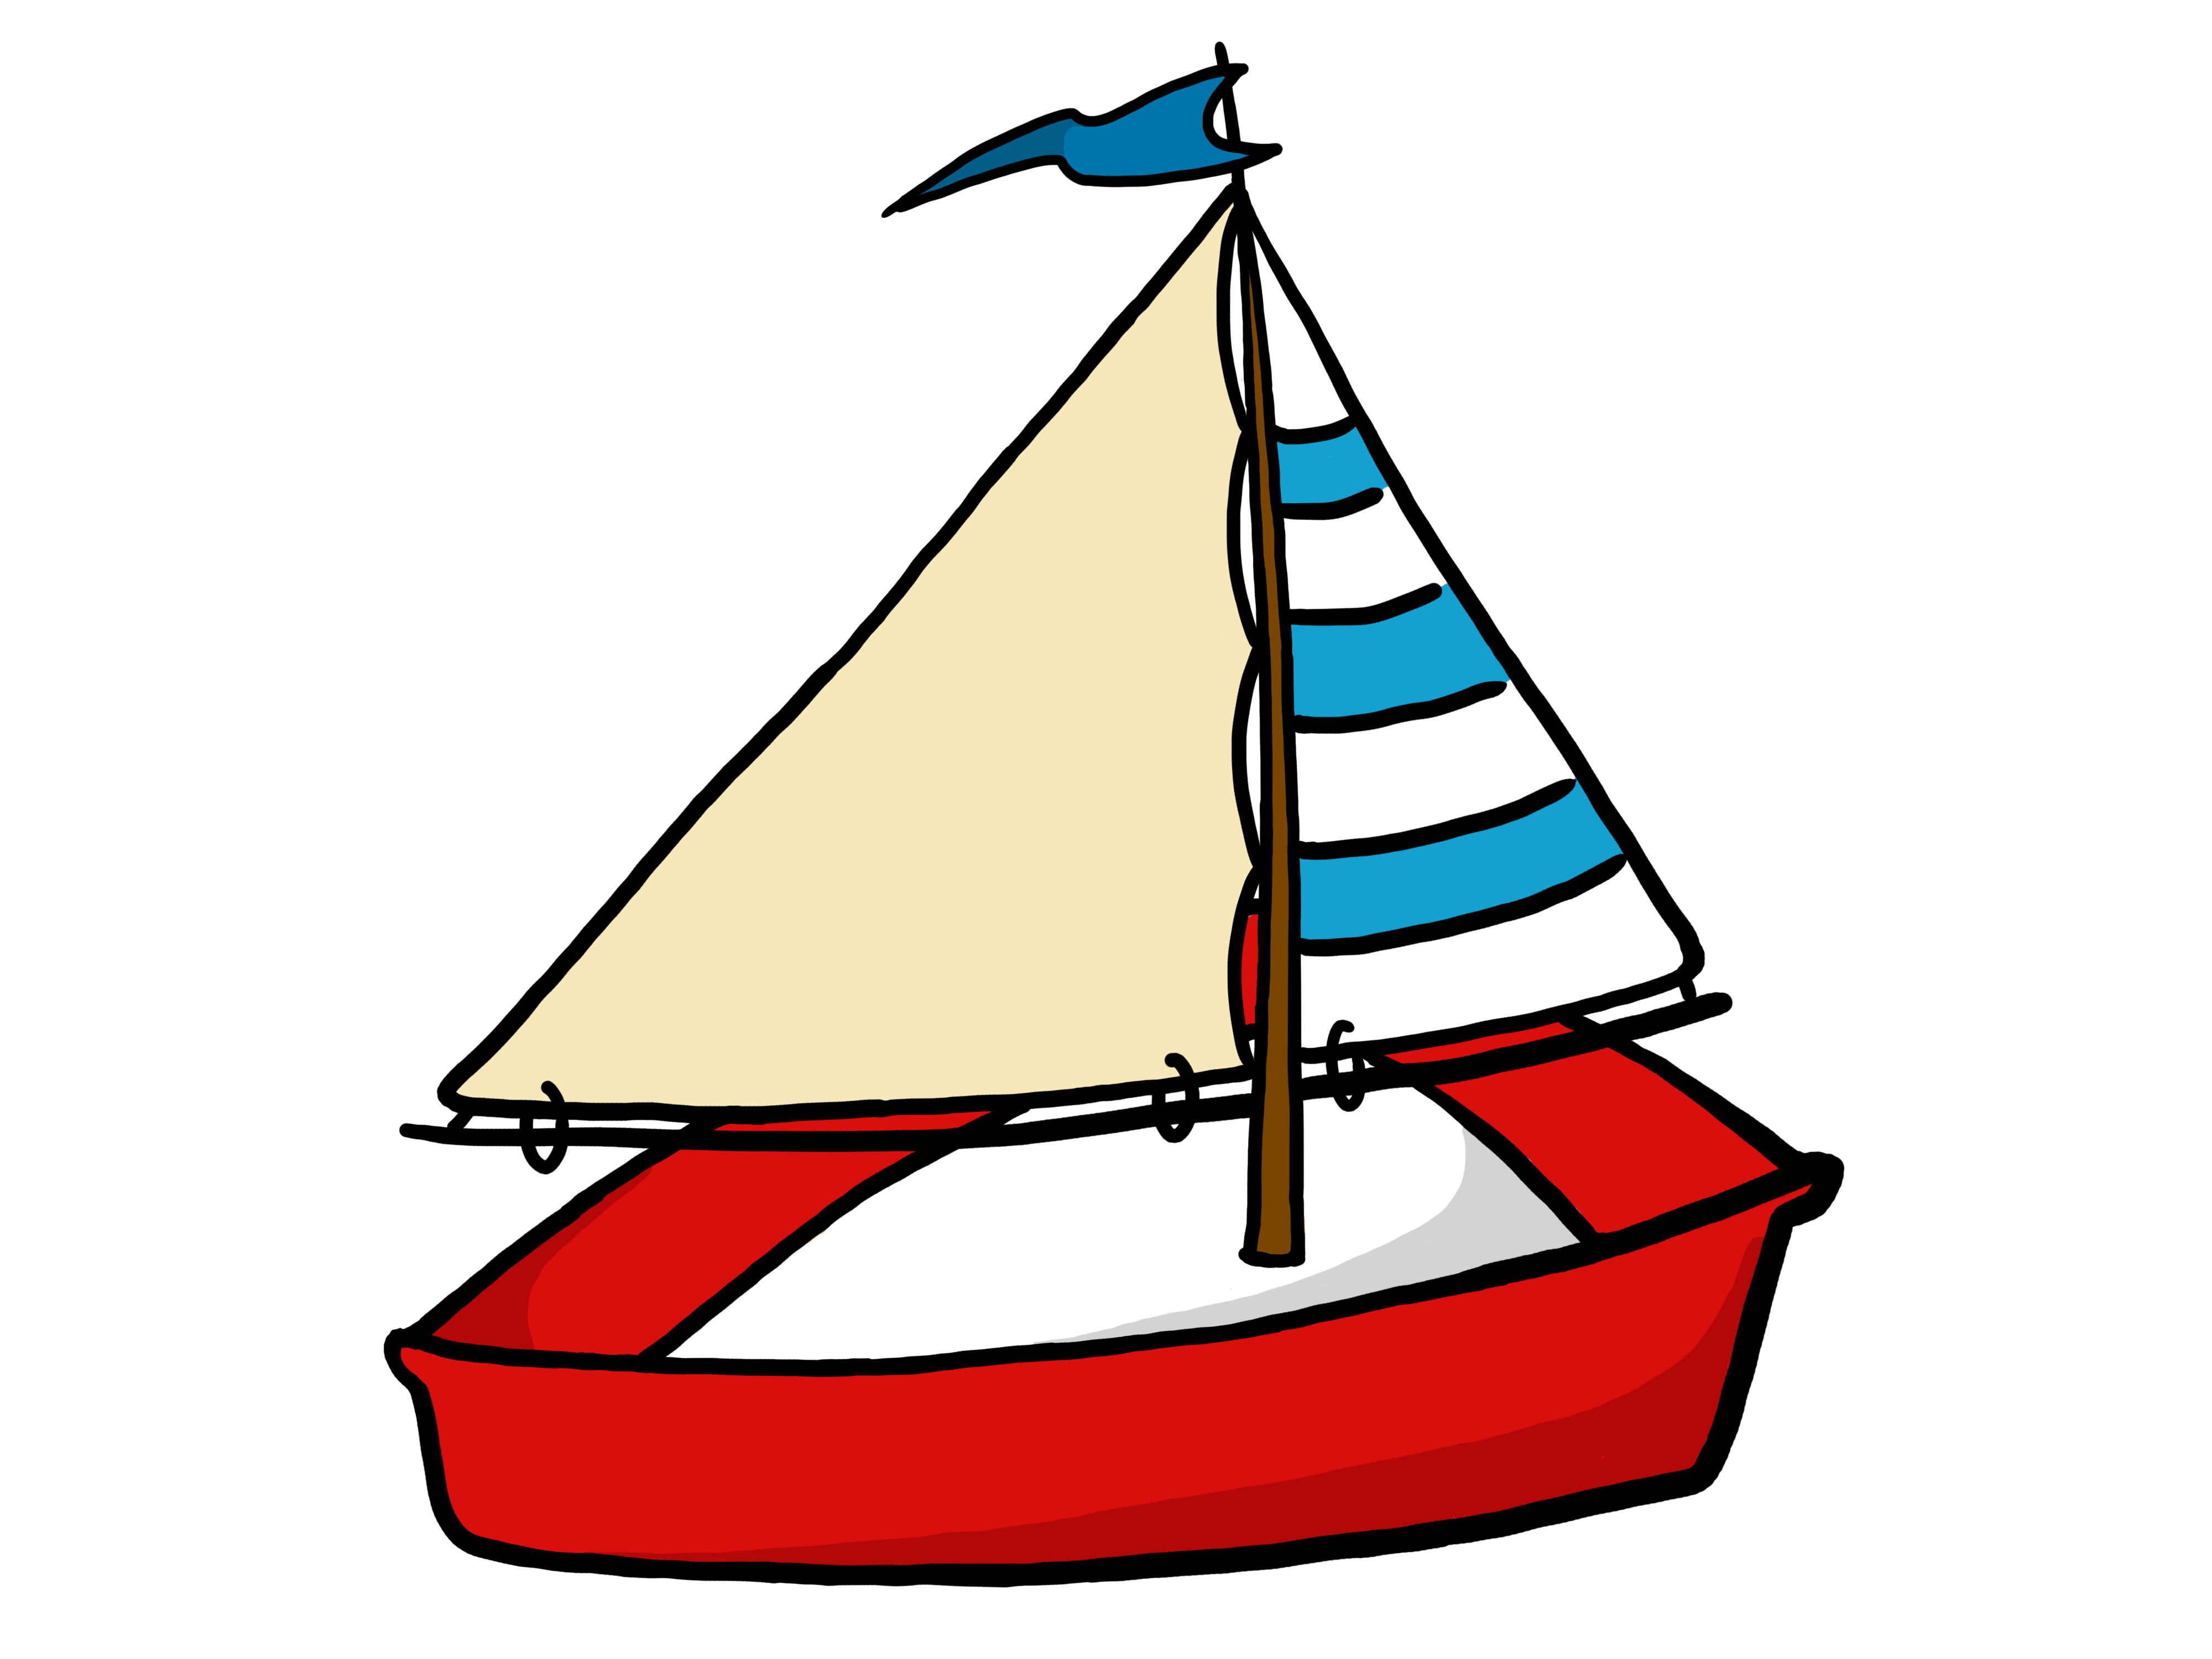 vector download Yacht clipart. Of a sailing boat